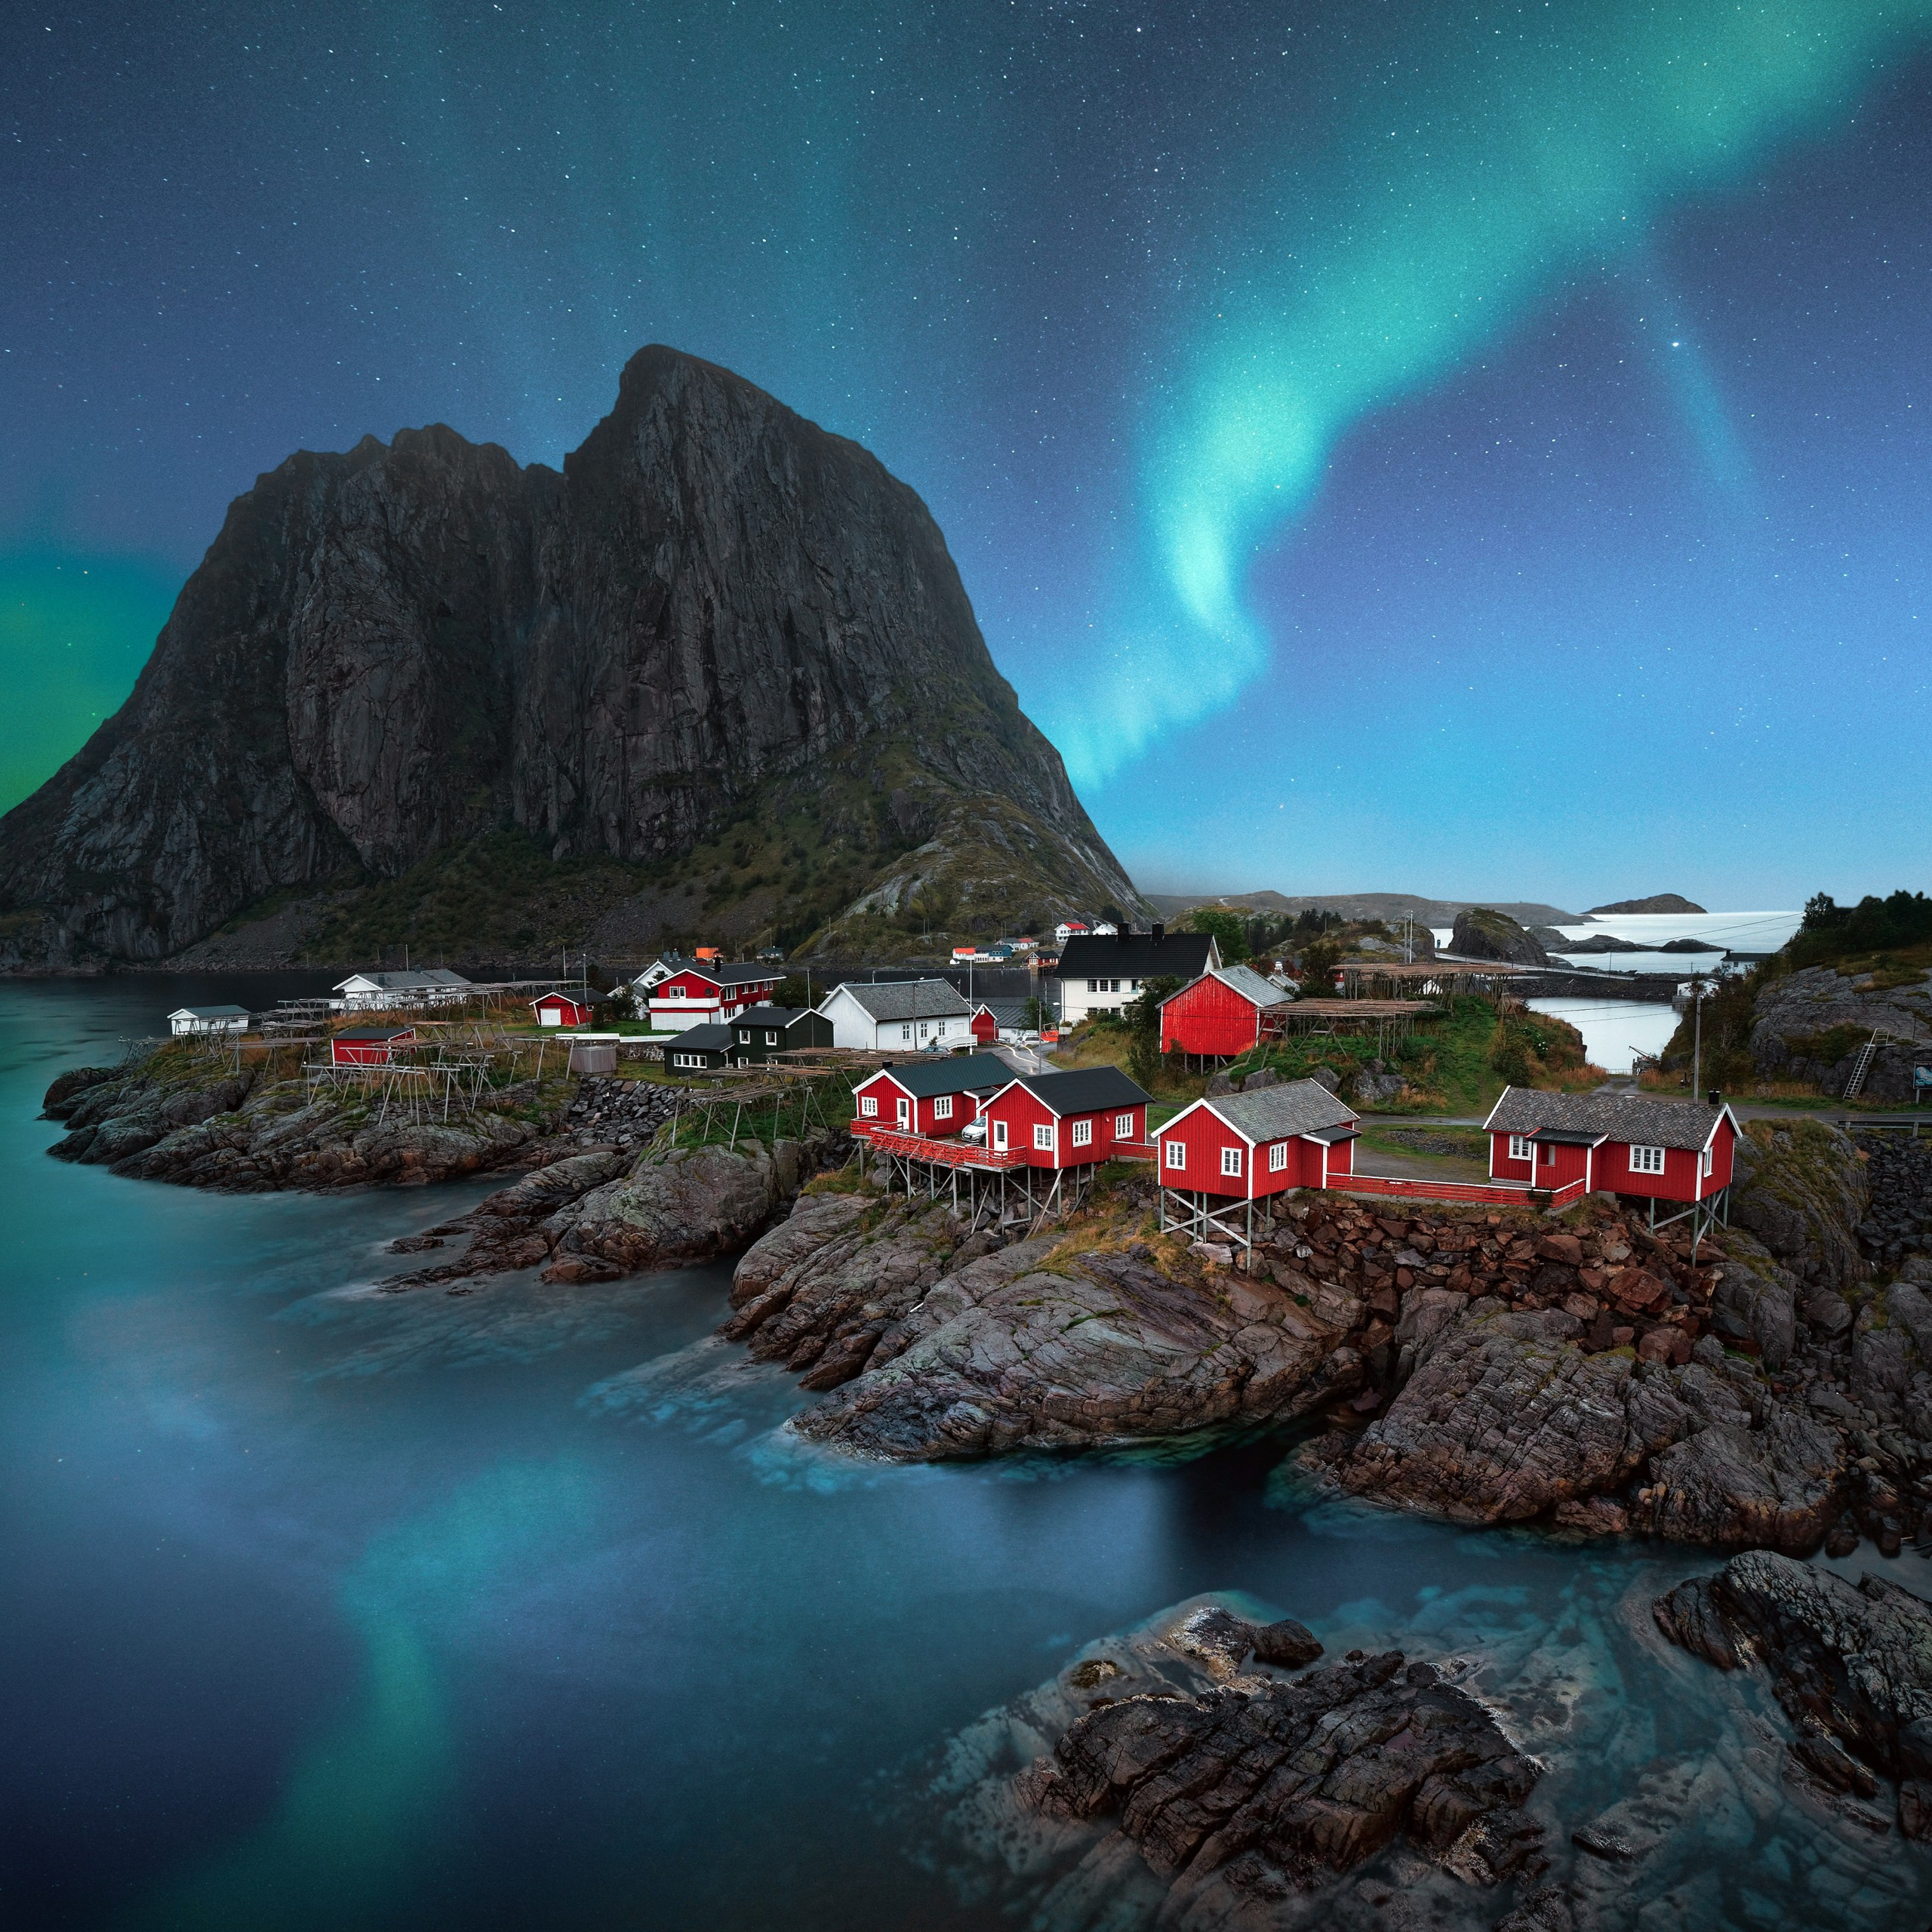 lofoten islands aurora borealis landscape night stars 2560x2560 2419